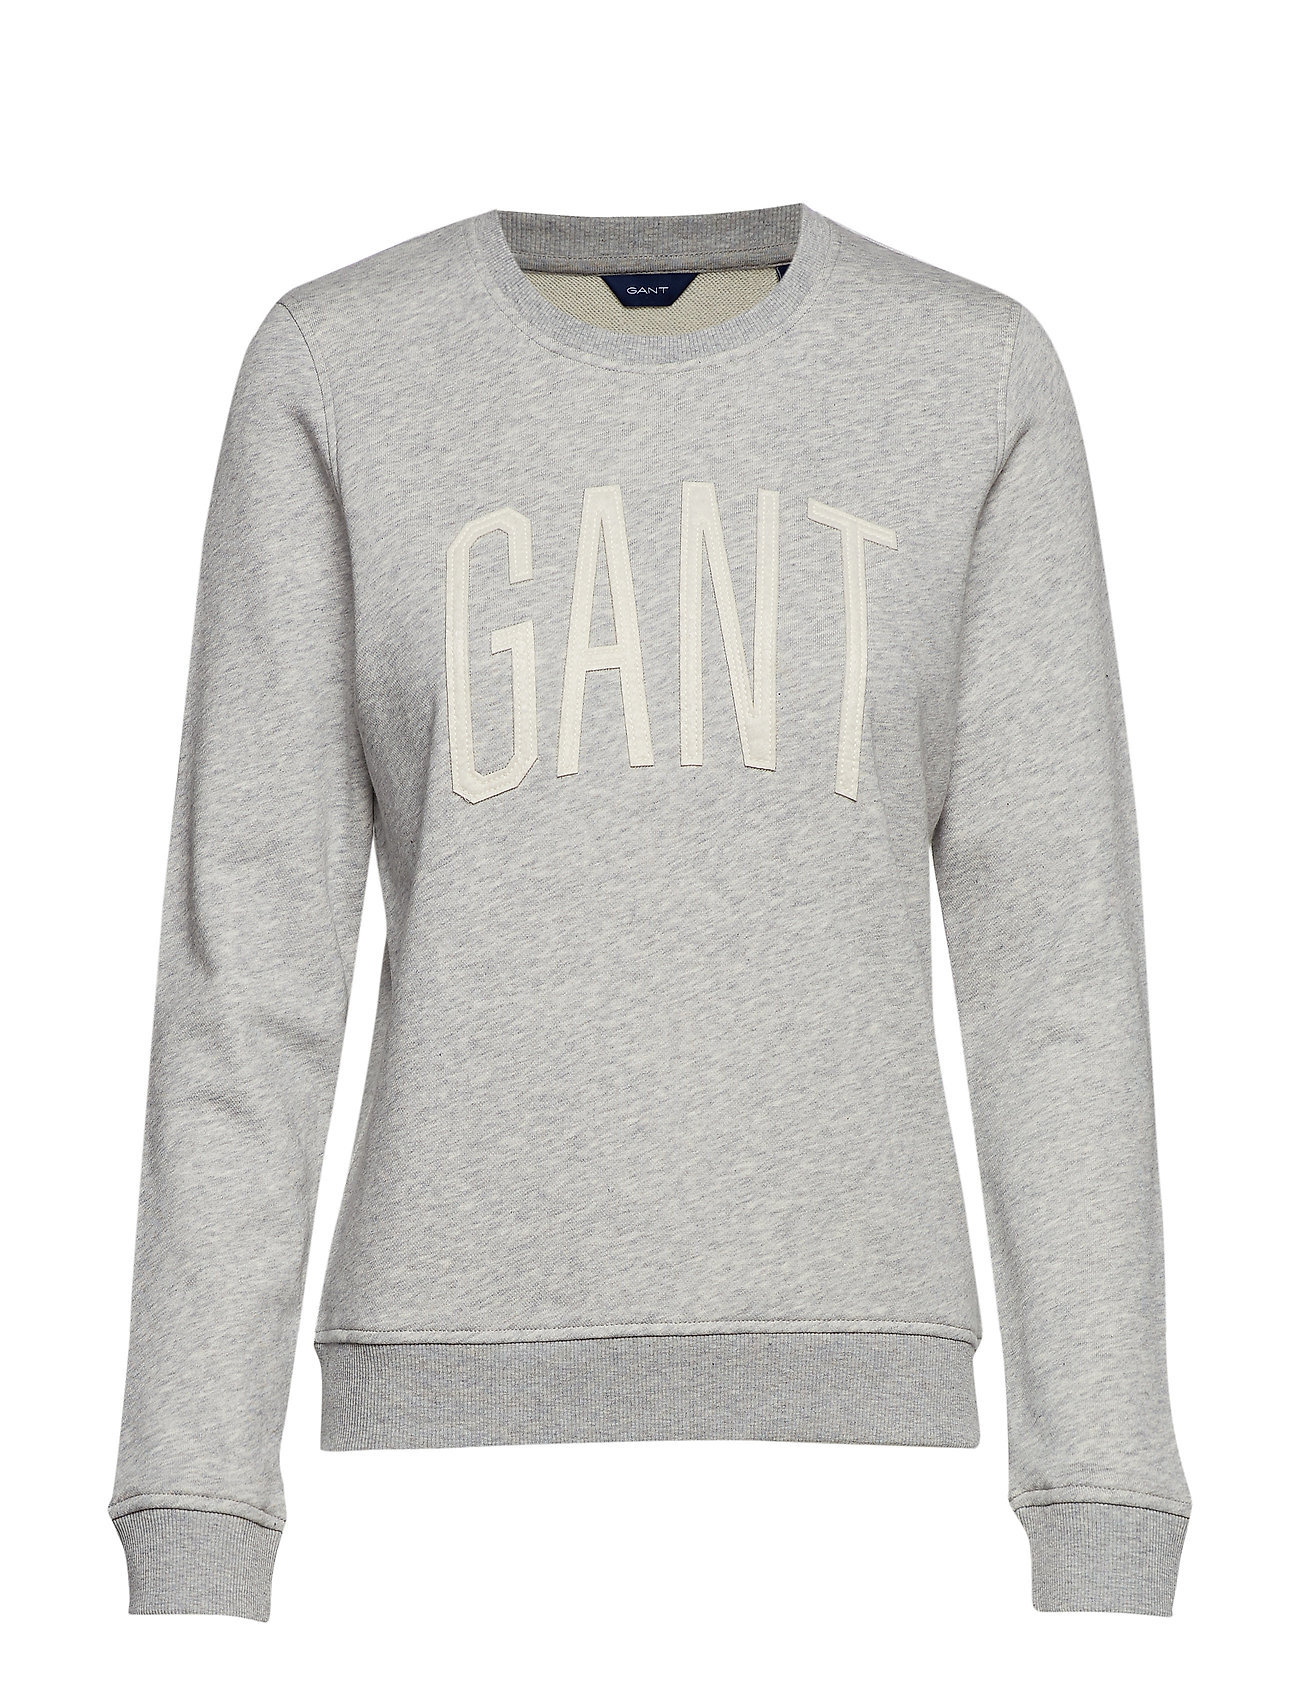 GANT D1. LOGO C-NECK SWEAT - LIGHT GREY MELANGE